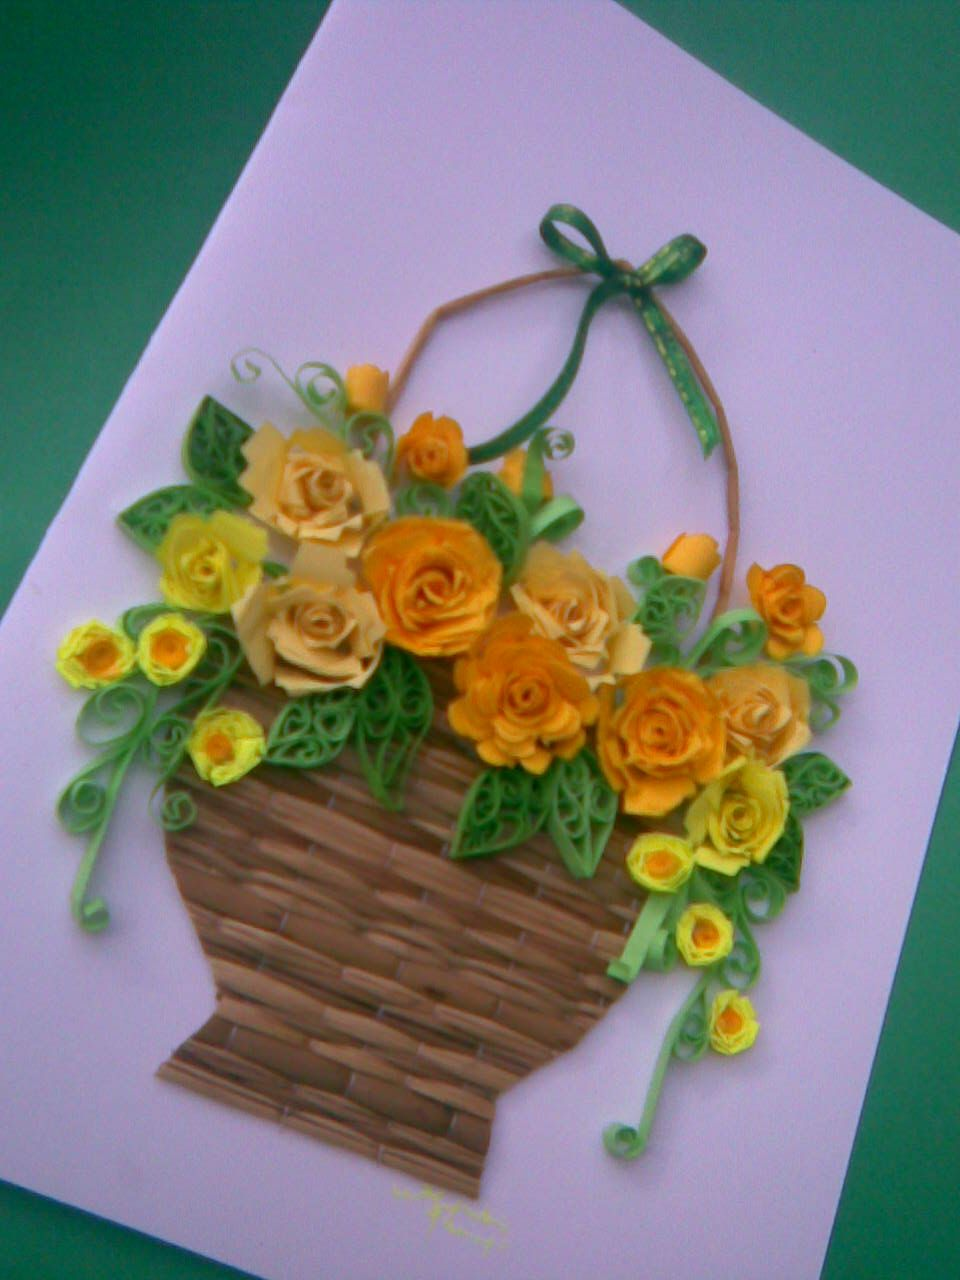 How To Make A Quilling Flower Basket : My paper quilling flower baskets greeting